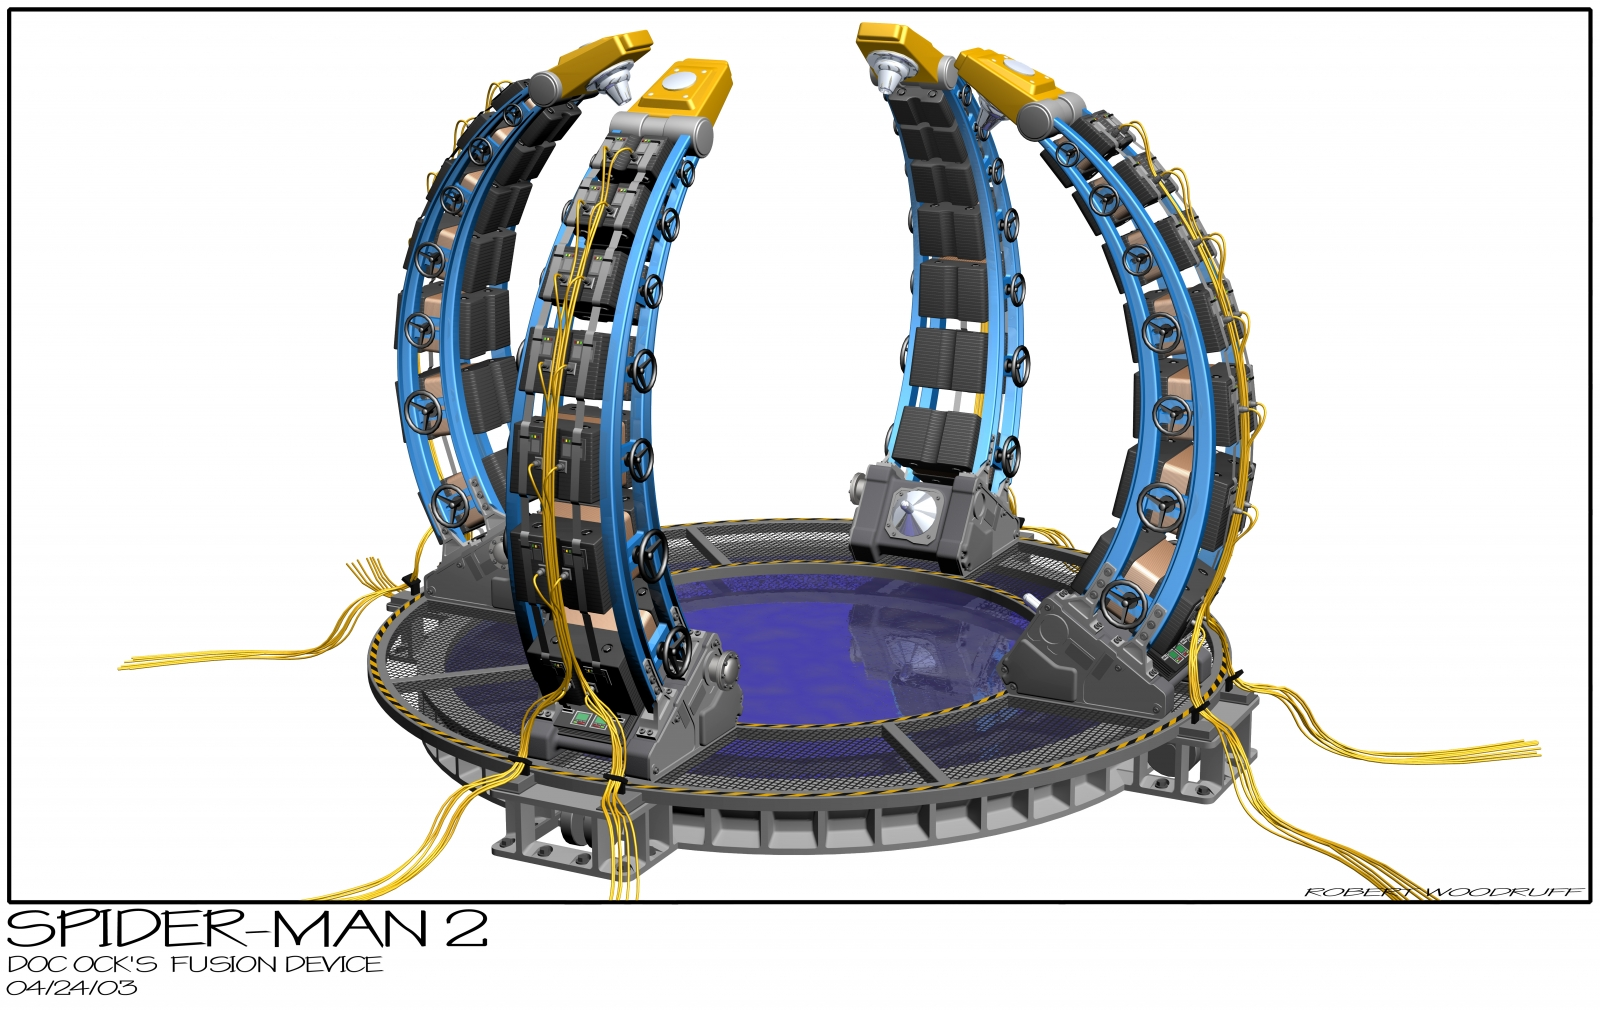 Spiderman 2 Doc Ock's Fusion Device.jpg